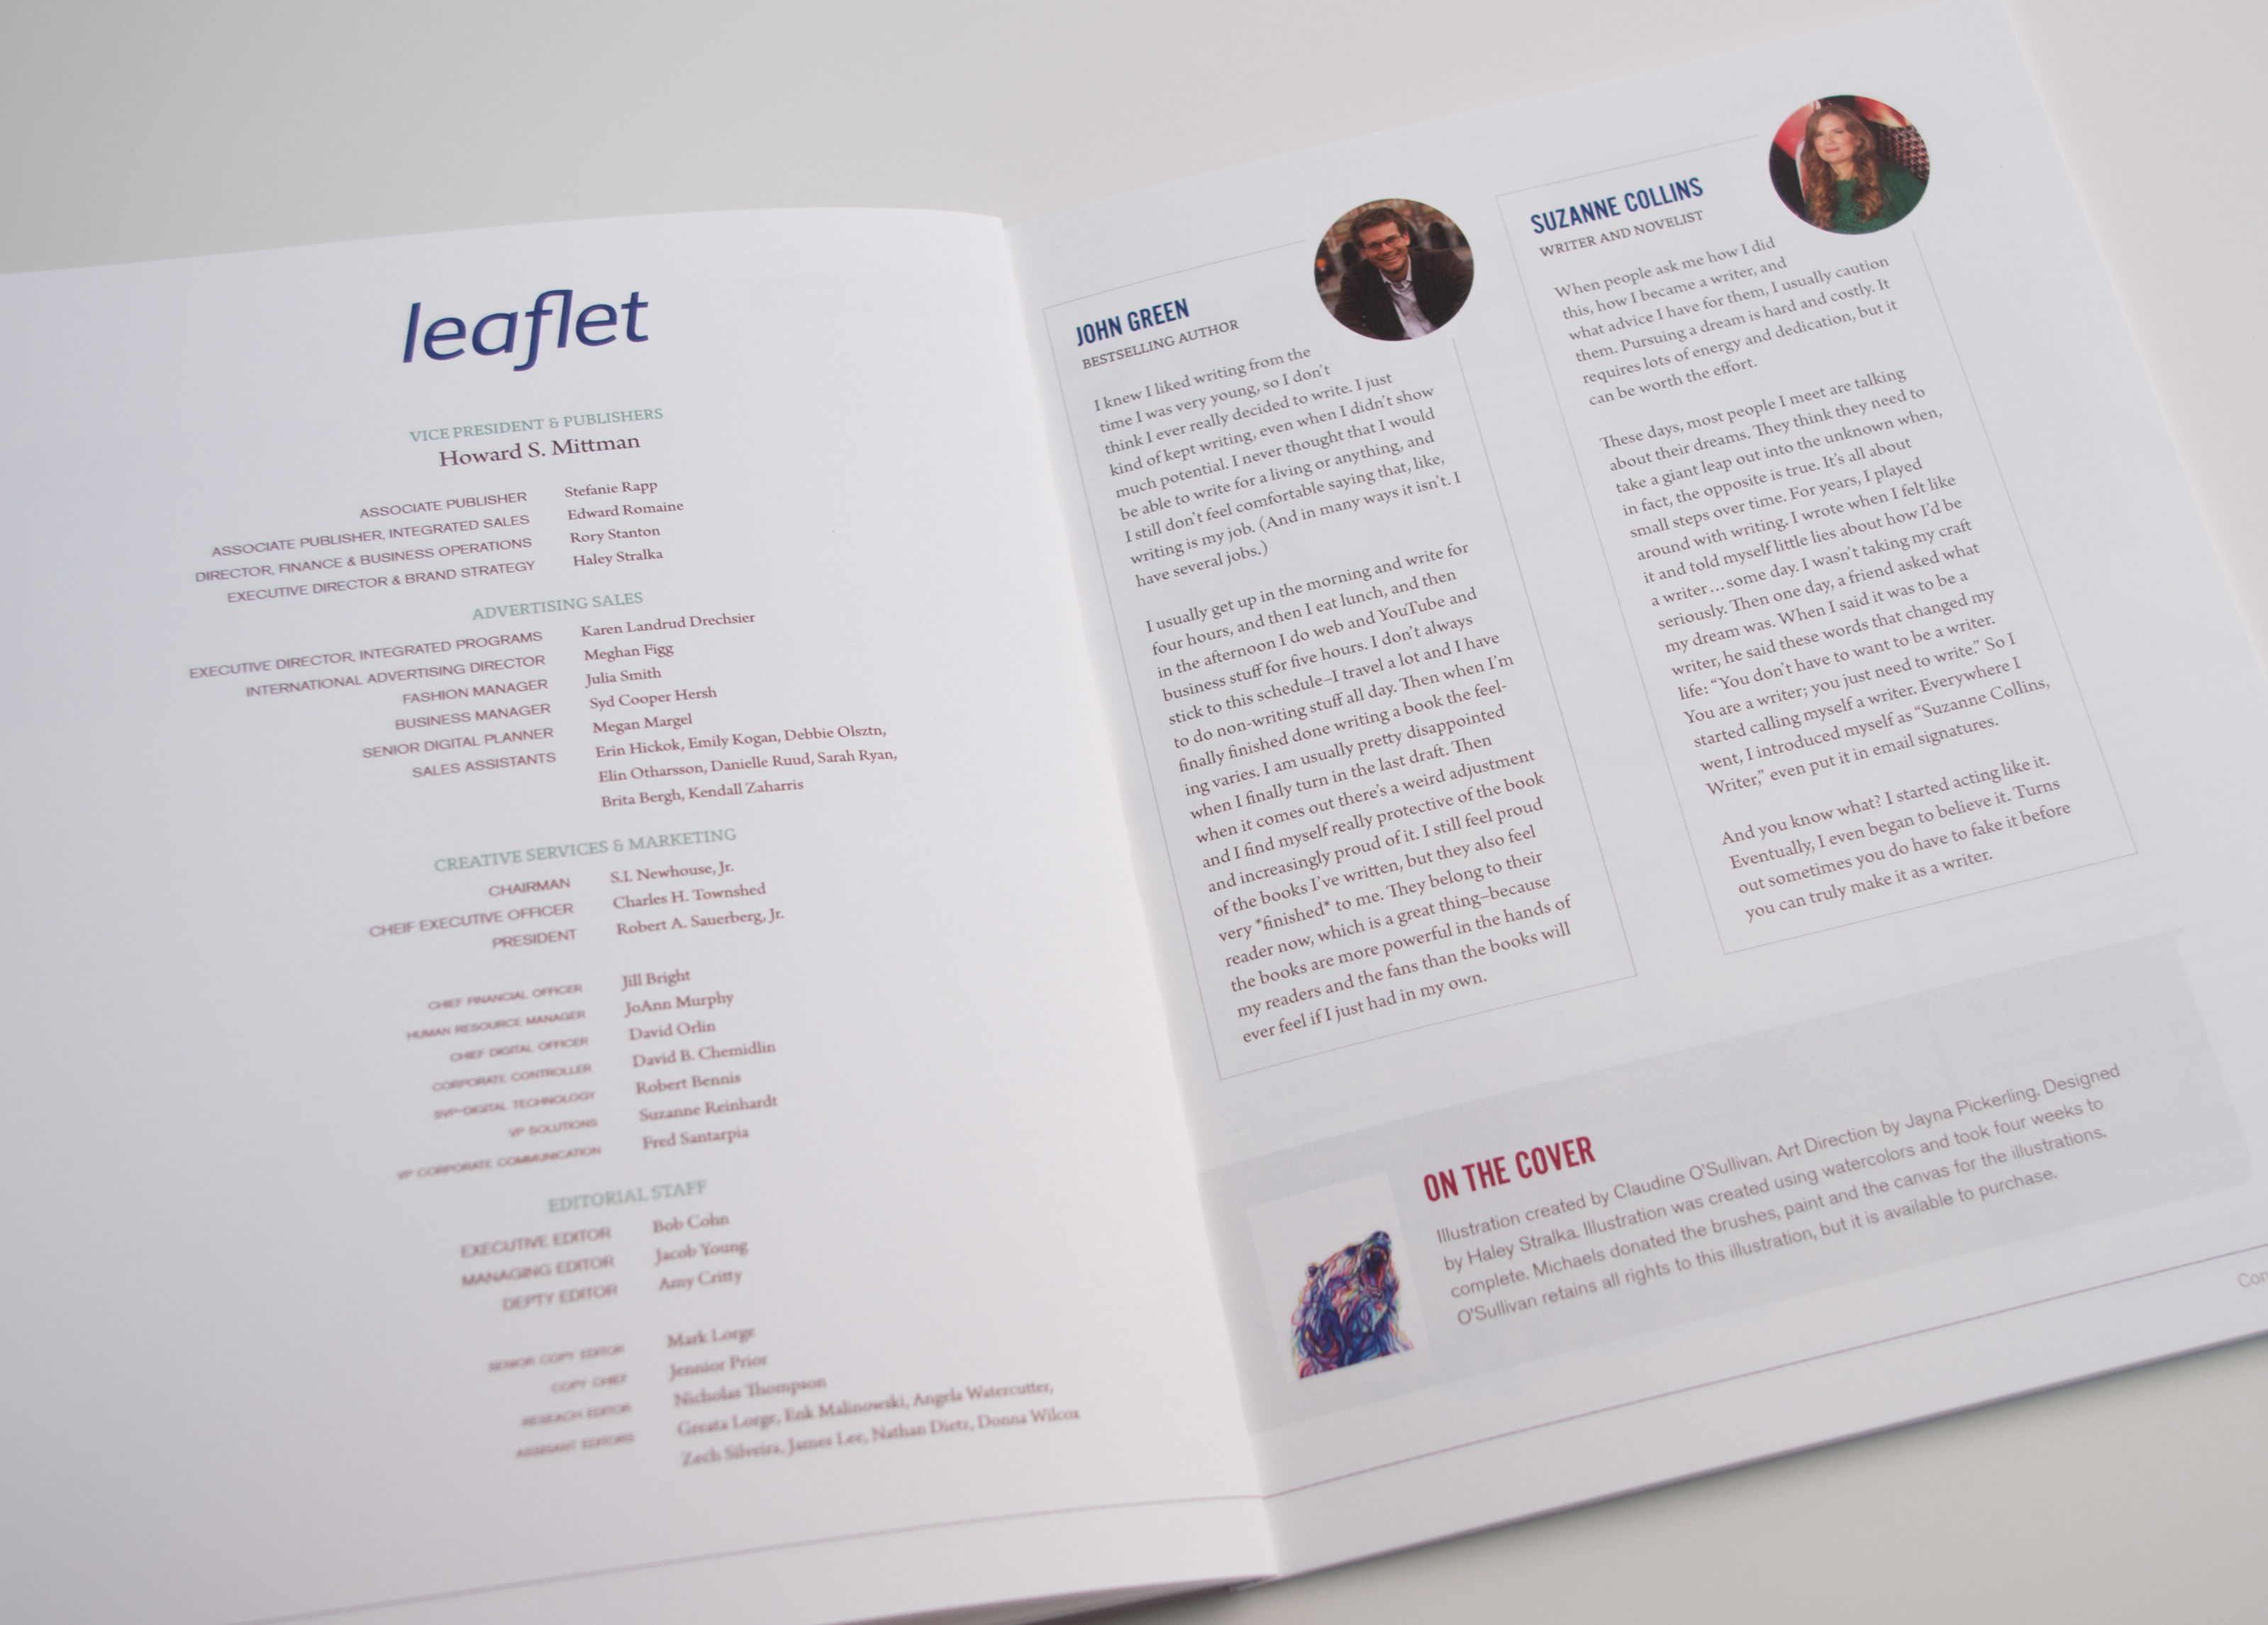 Leaflet Magazine Letter to the Editor